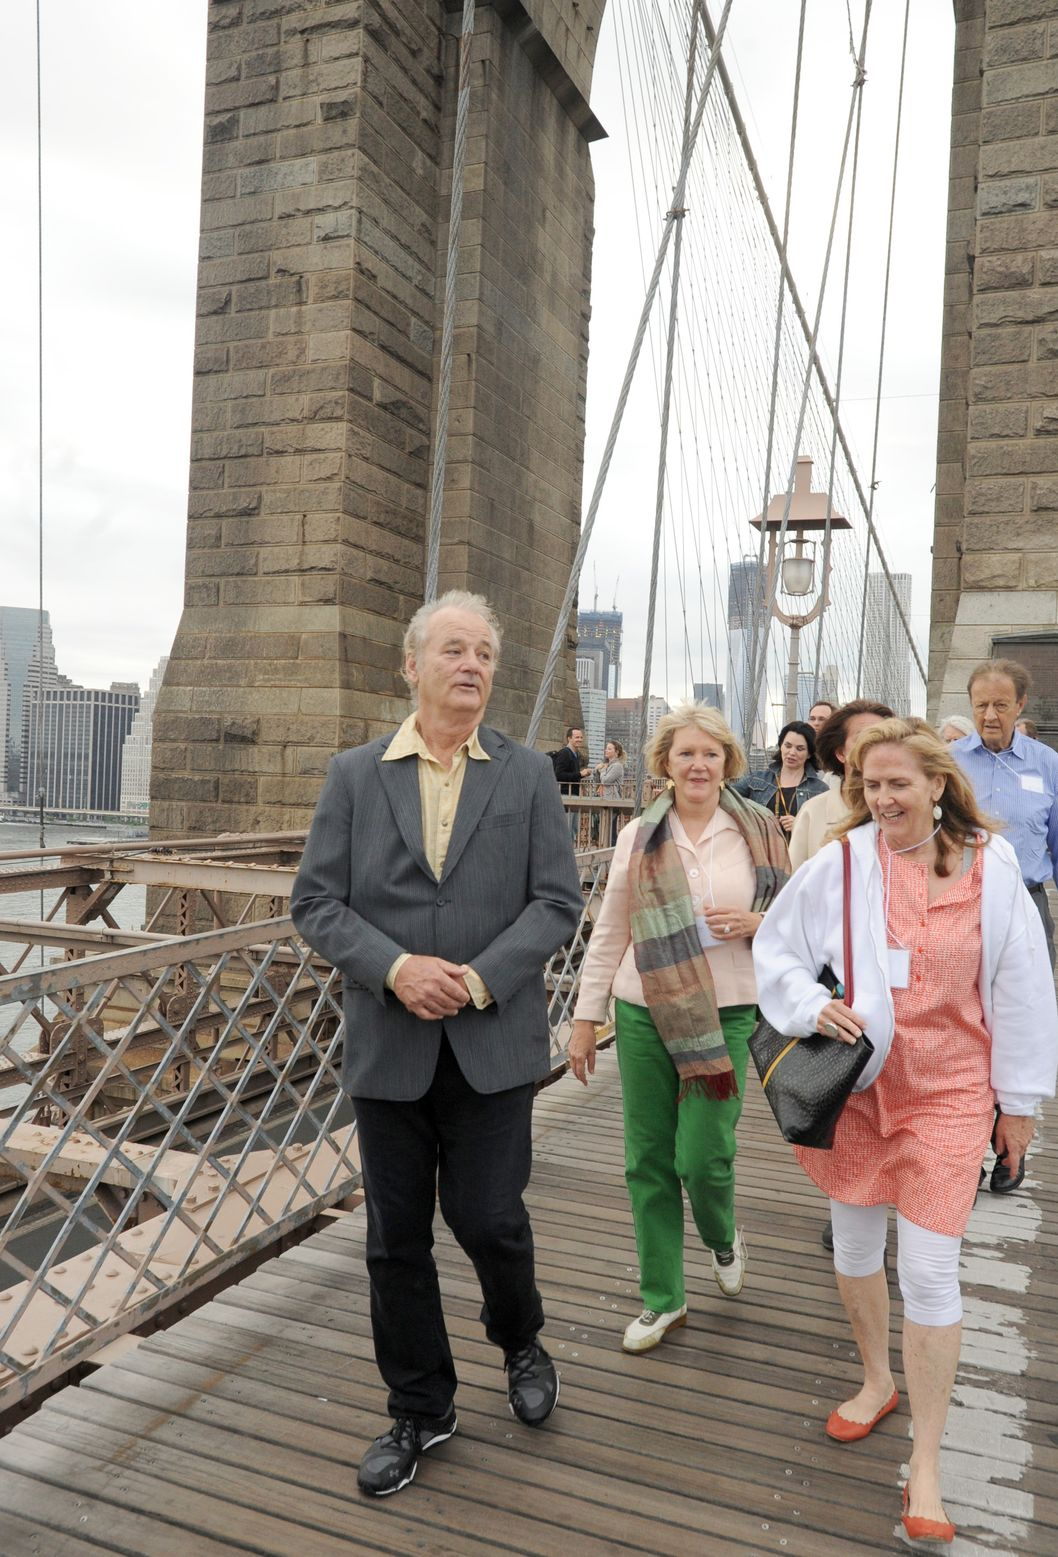 Bill Murray walks during Poets House's 17th Annual Poetry Walk Across The Brooklyn Bridge in Brooklyn, New York.  <P> Pictured: Bill Murray <P><B>Ref: SPL405194  110612  </B><BR/> Picture by: Brock Miller / Splash News<BR/> </P><P> <B>Splash News and Pictures</B><BR/> Los Angeles:	310-821-2666<BR/> New York:	212-619-2666<BR/> London:	870-934-2666<BR/> photodesk@splashnews.com<BR/> </P>